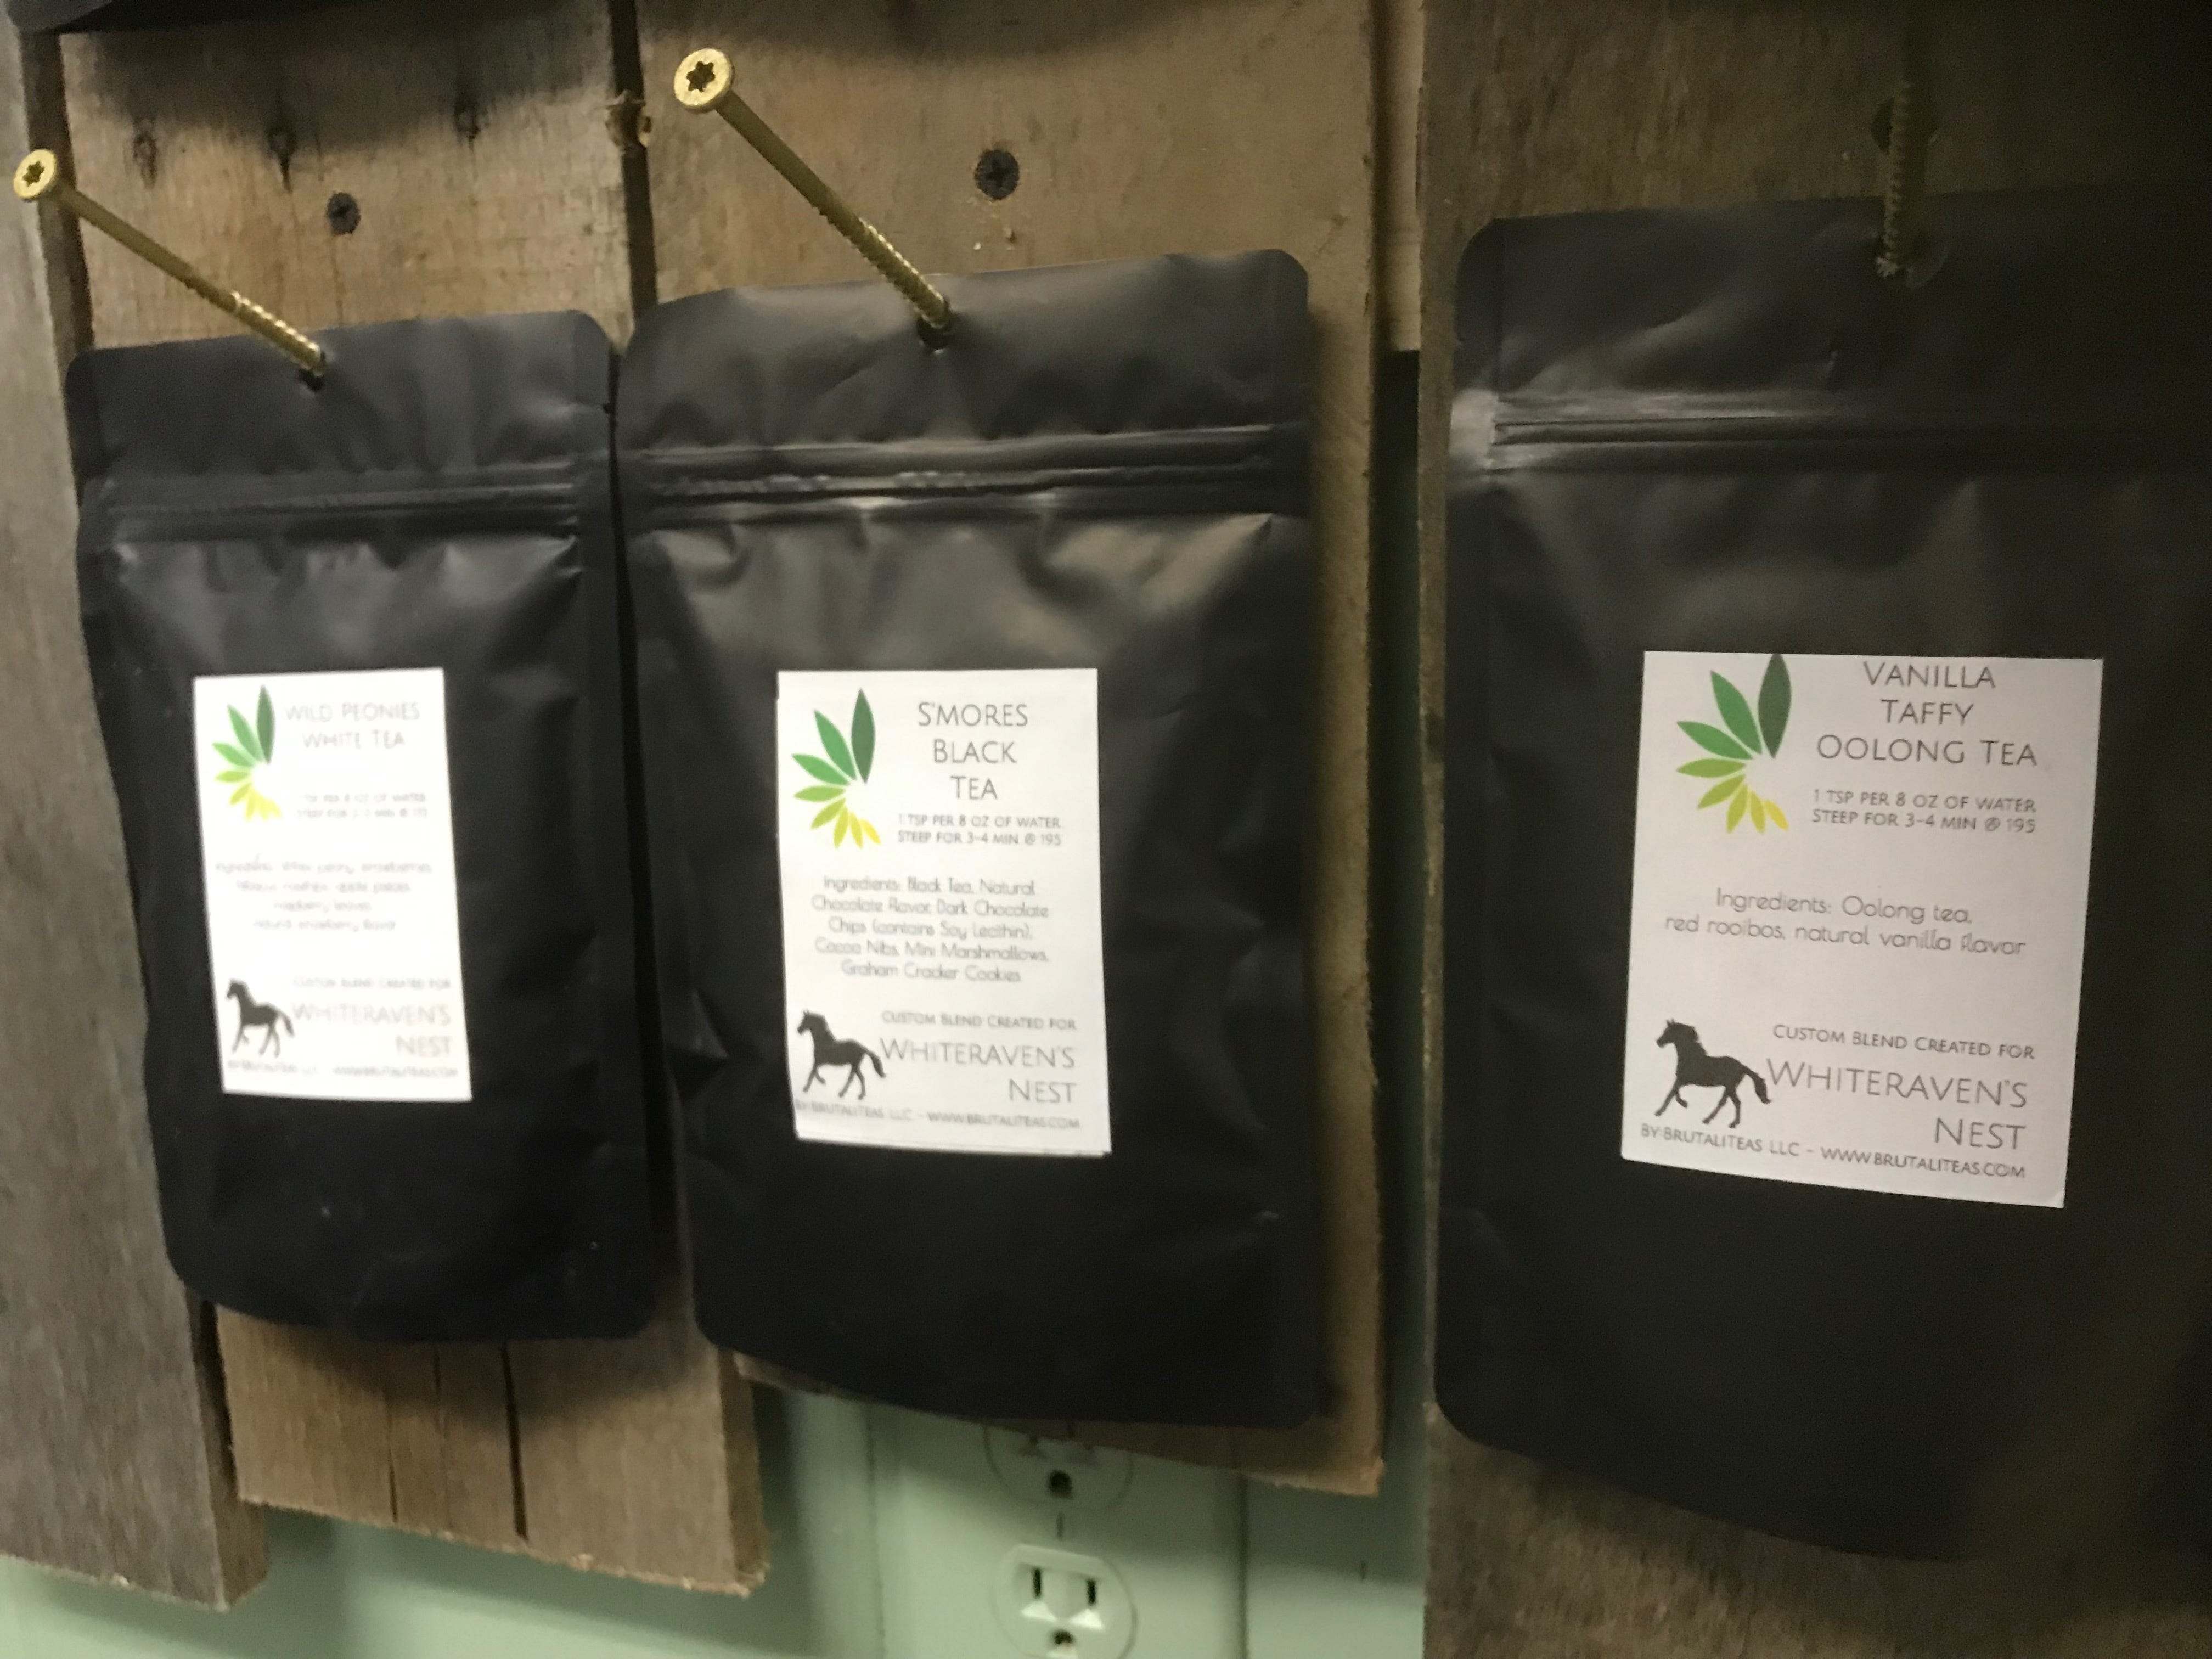 Several varieties of tea are sold at Whiteraven's Nest Farm to Table store on Chincoteague Road in Wallops Island, Virginia.